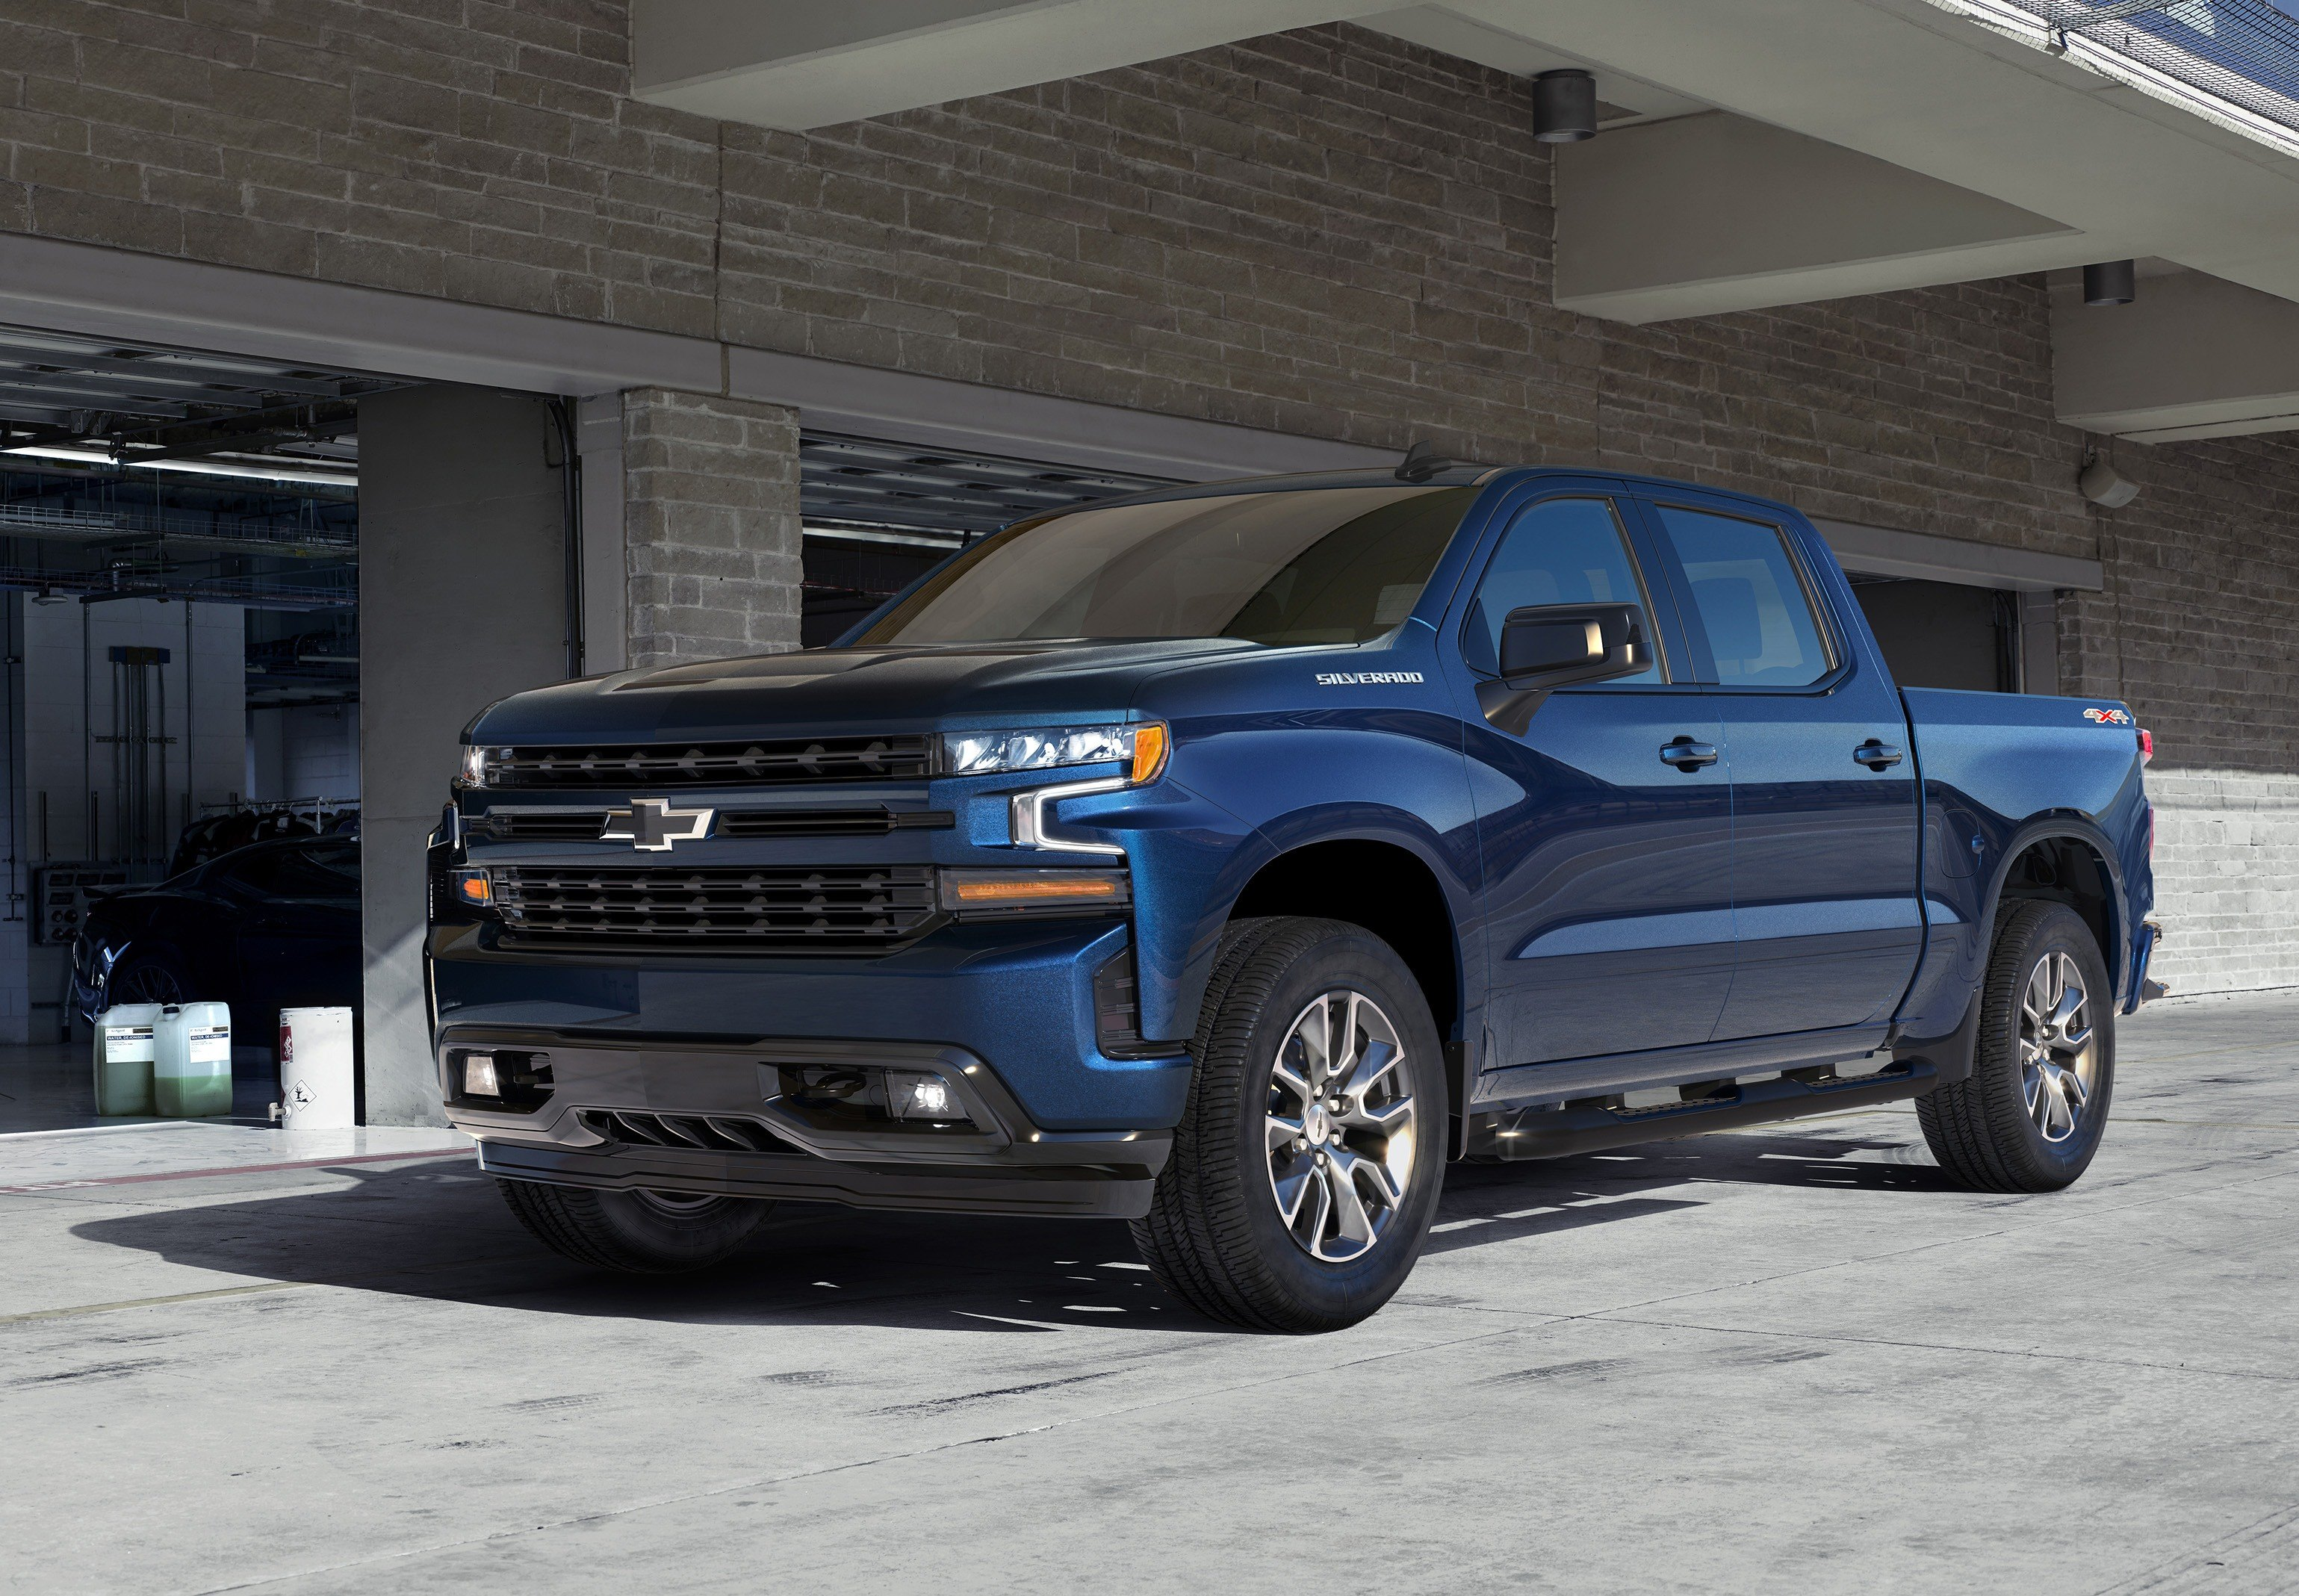 2019-chevy-silverado-trim-levels-rst-1